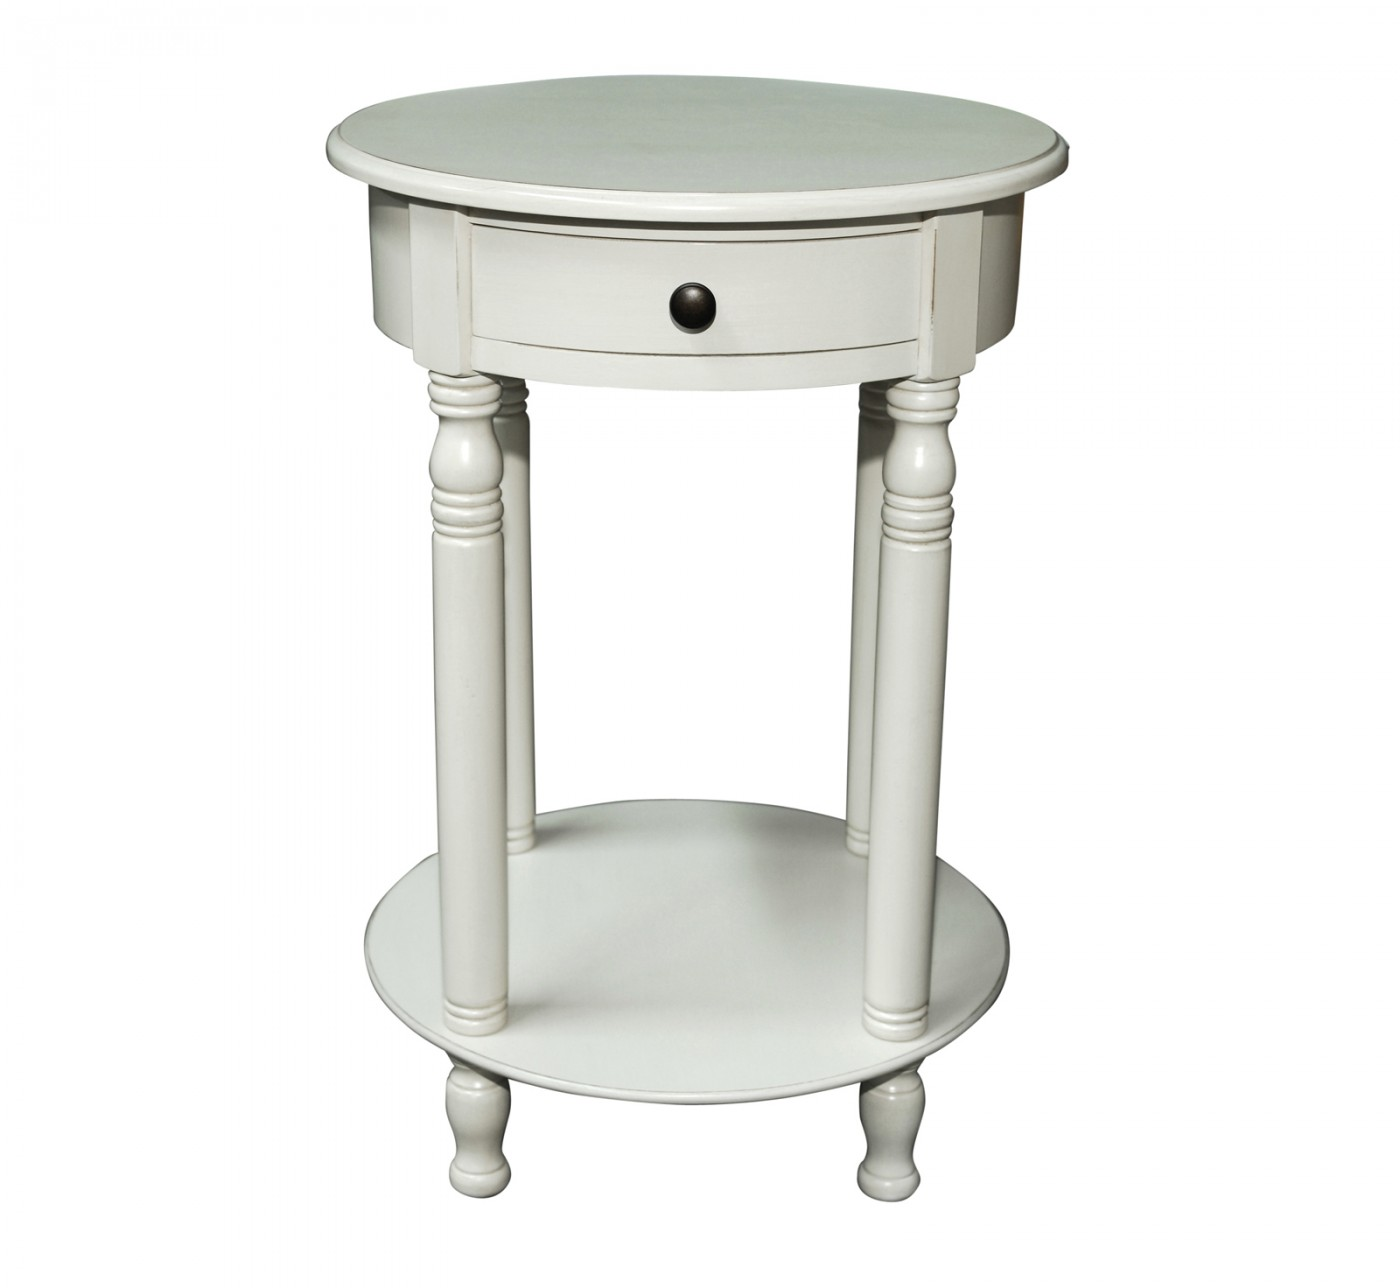 accent tables grey table white corner rustic round bedside with storage side drawer entryway wood and metal small end full size amazing cute lamps craigslist used furniture west